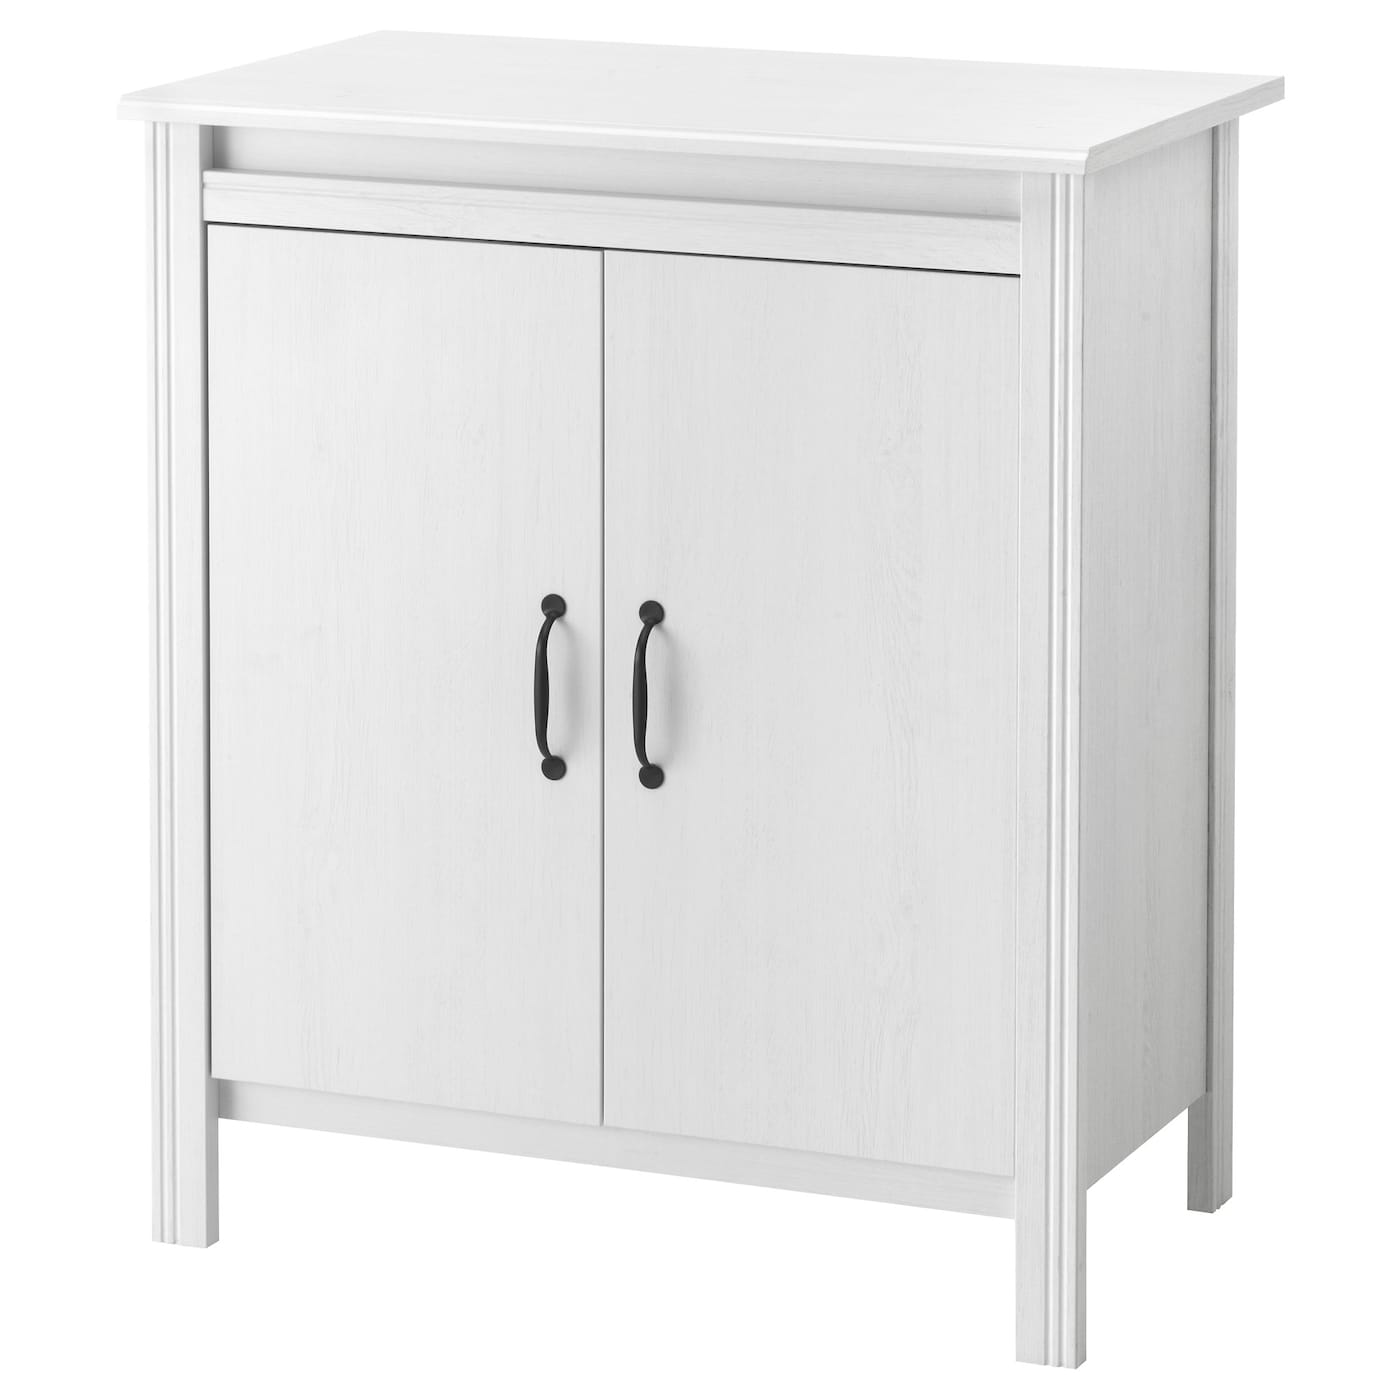 Brusali cabinet with doors white 80x93 cm ikea for Schrank 60 breit 30 tief